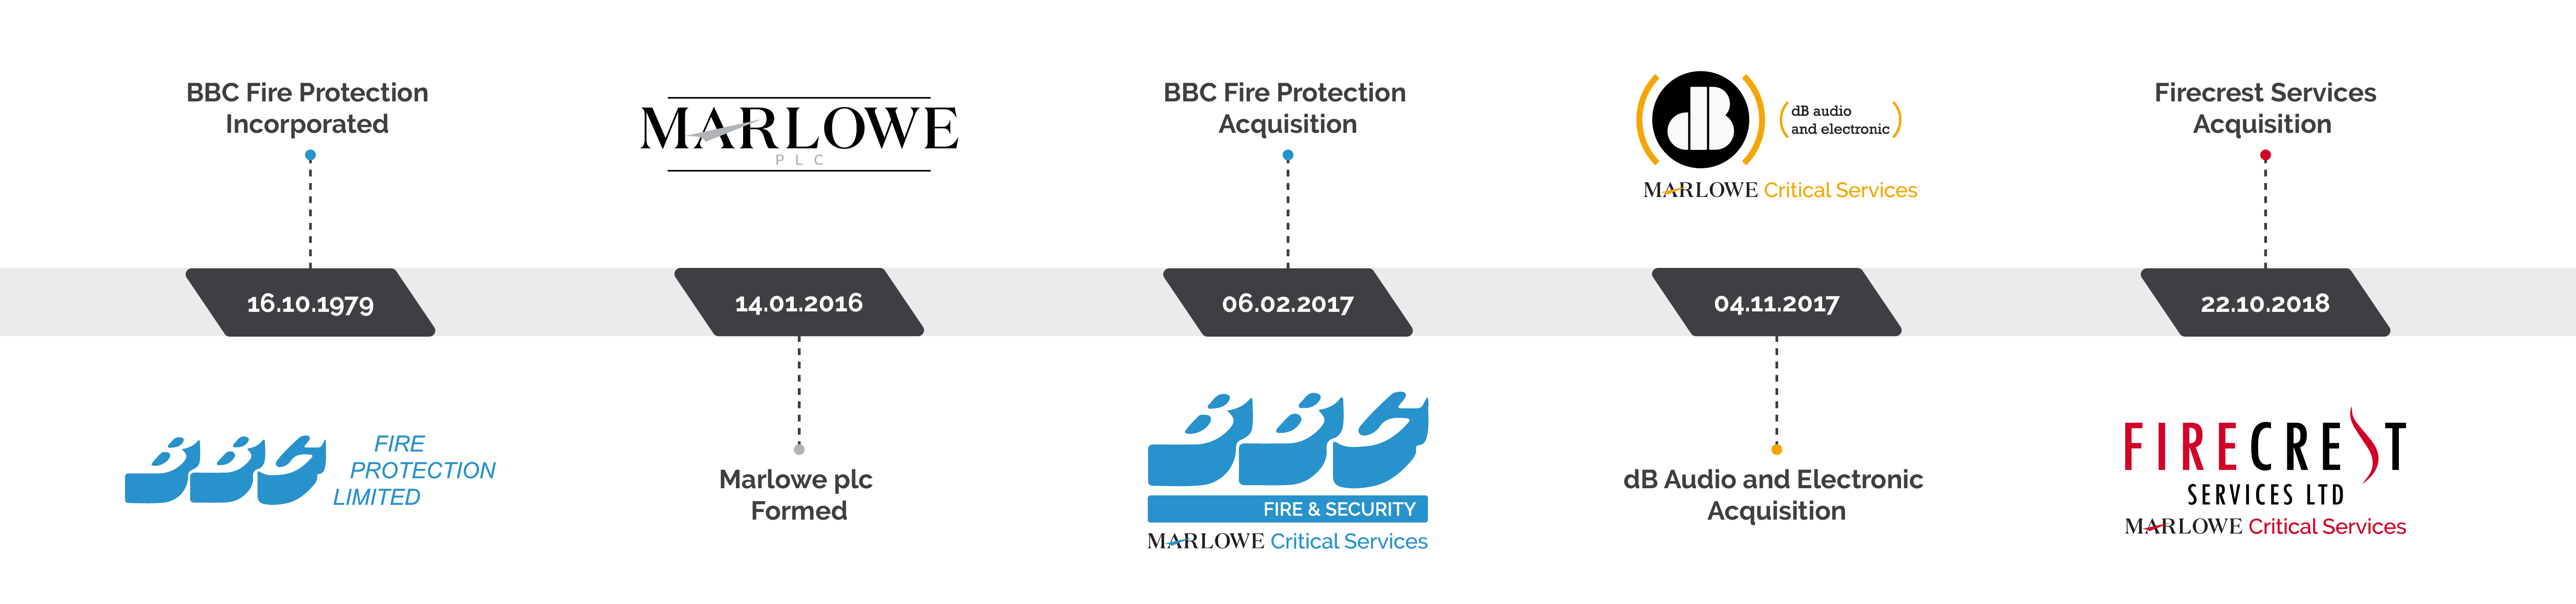 BBC Fire Protection History